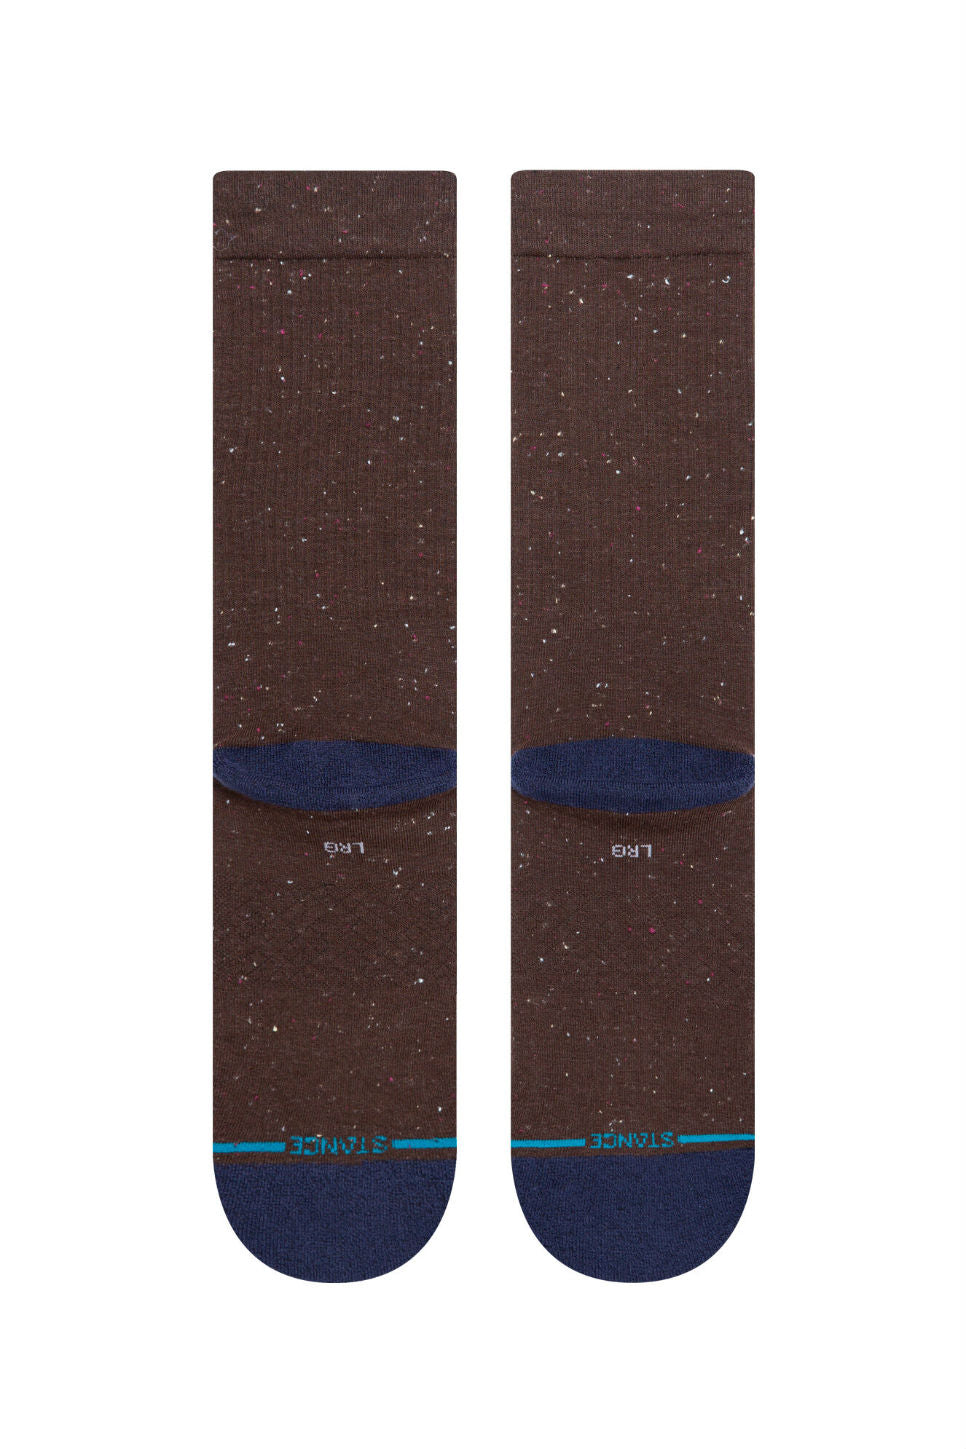 Stance - Icon 2 - Brown - Back